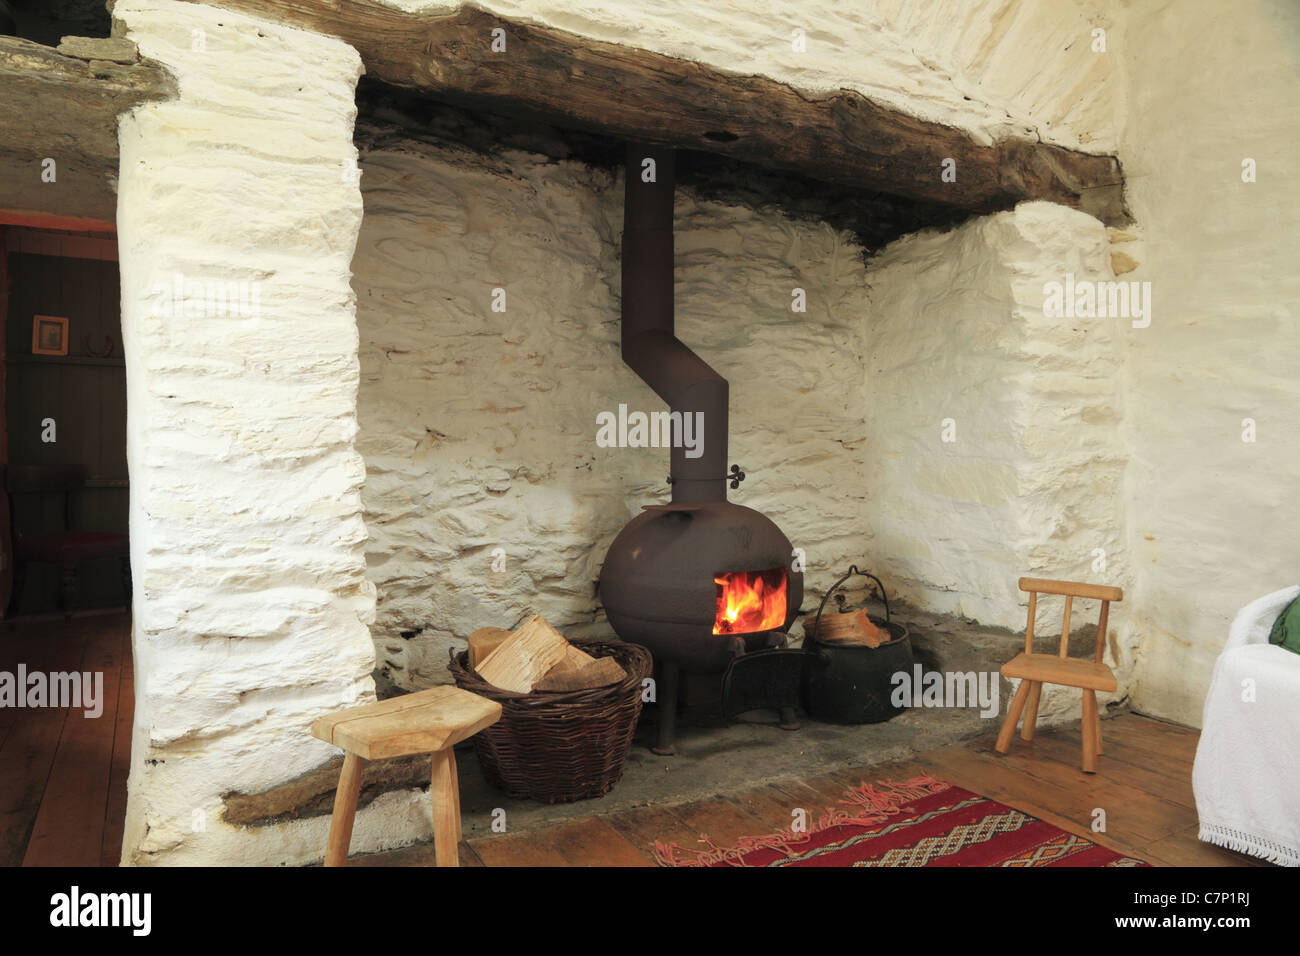 old fireplace fireside fire pot stock photos  old fireplace . a pot bellied stove in a traditional irish fireplace county kerry rep of